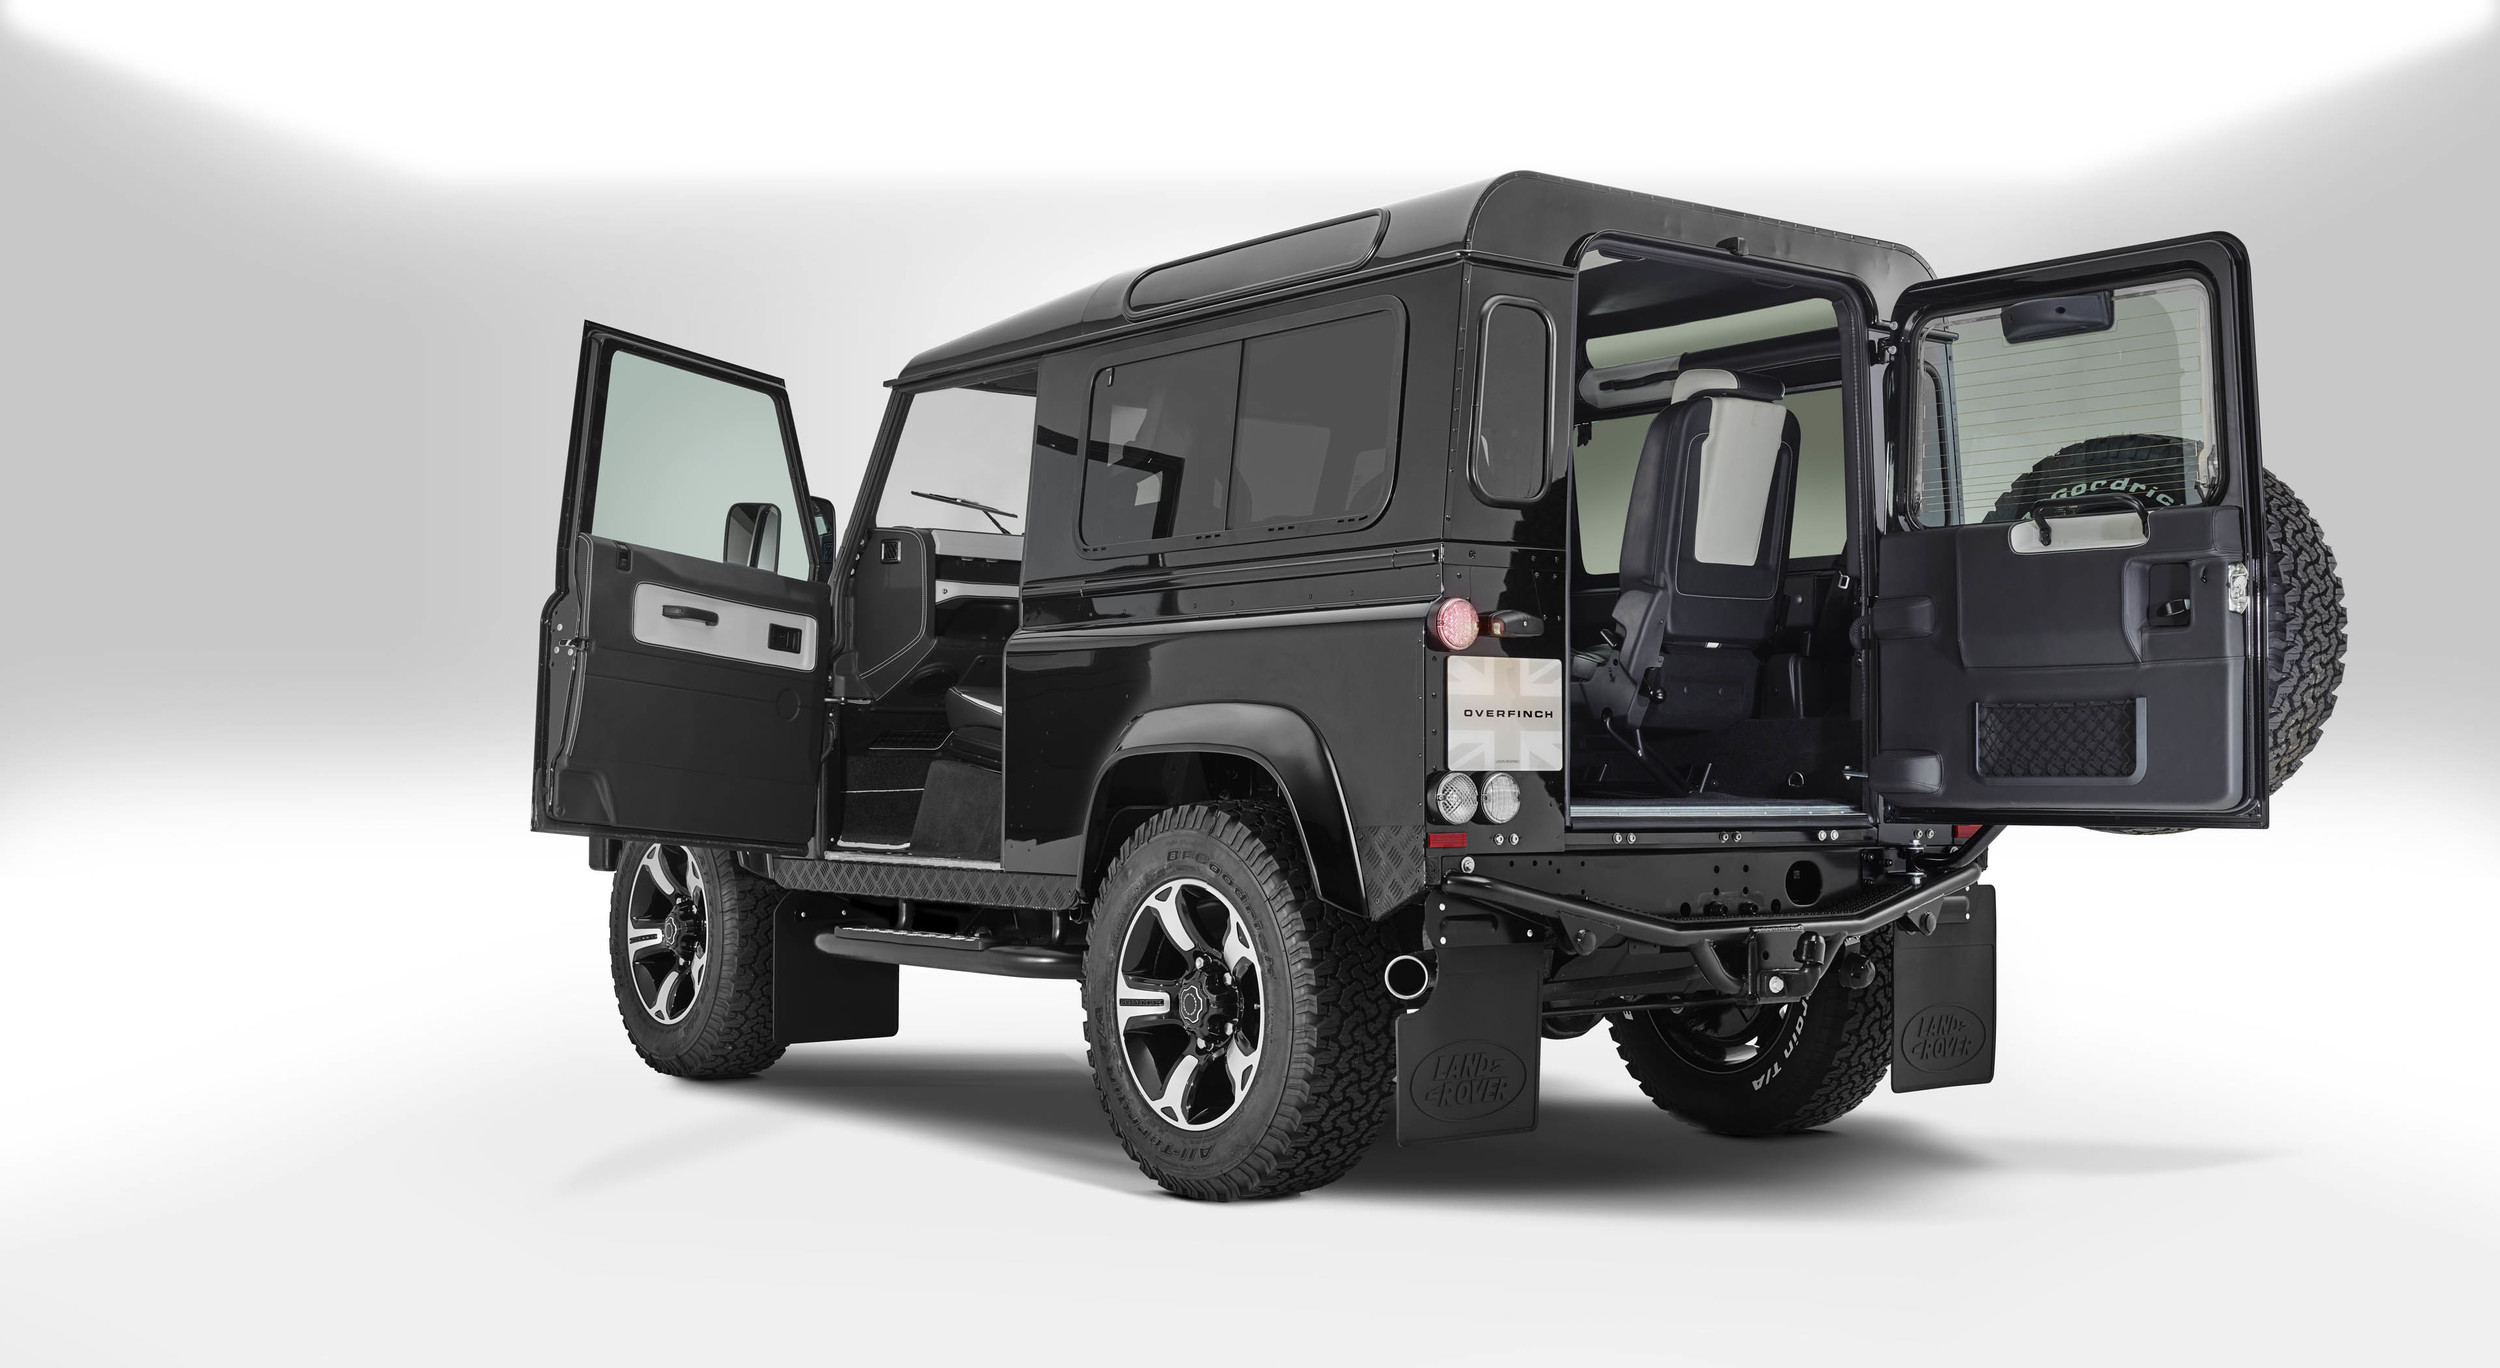 Foto de Overfinch Defender 40th Anniversary (16/19)